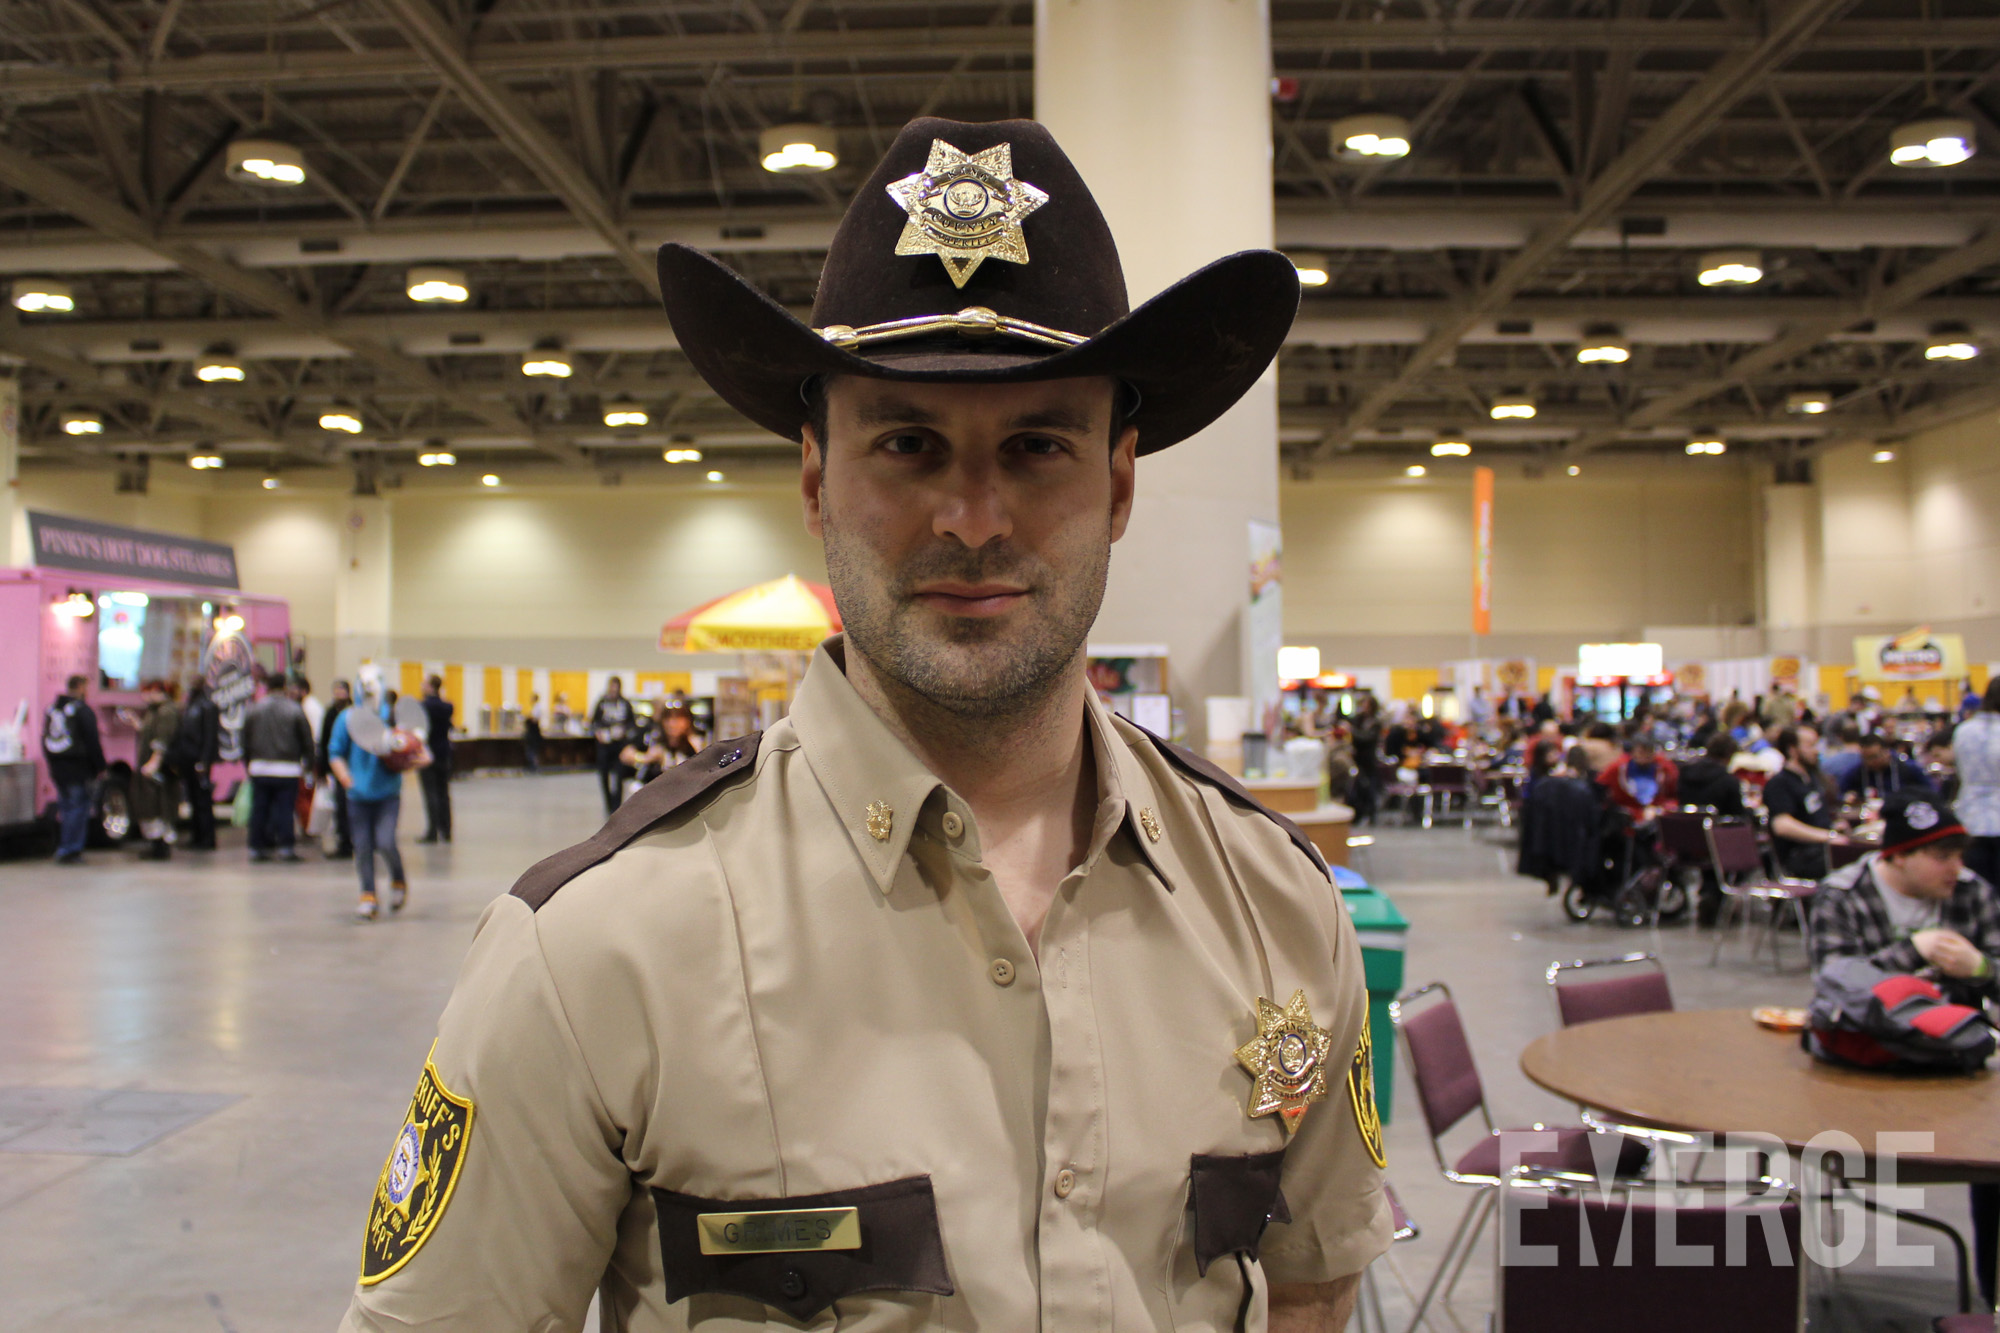 Rick Grimes from The Walking Dead, before all the blood and guts